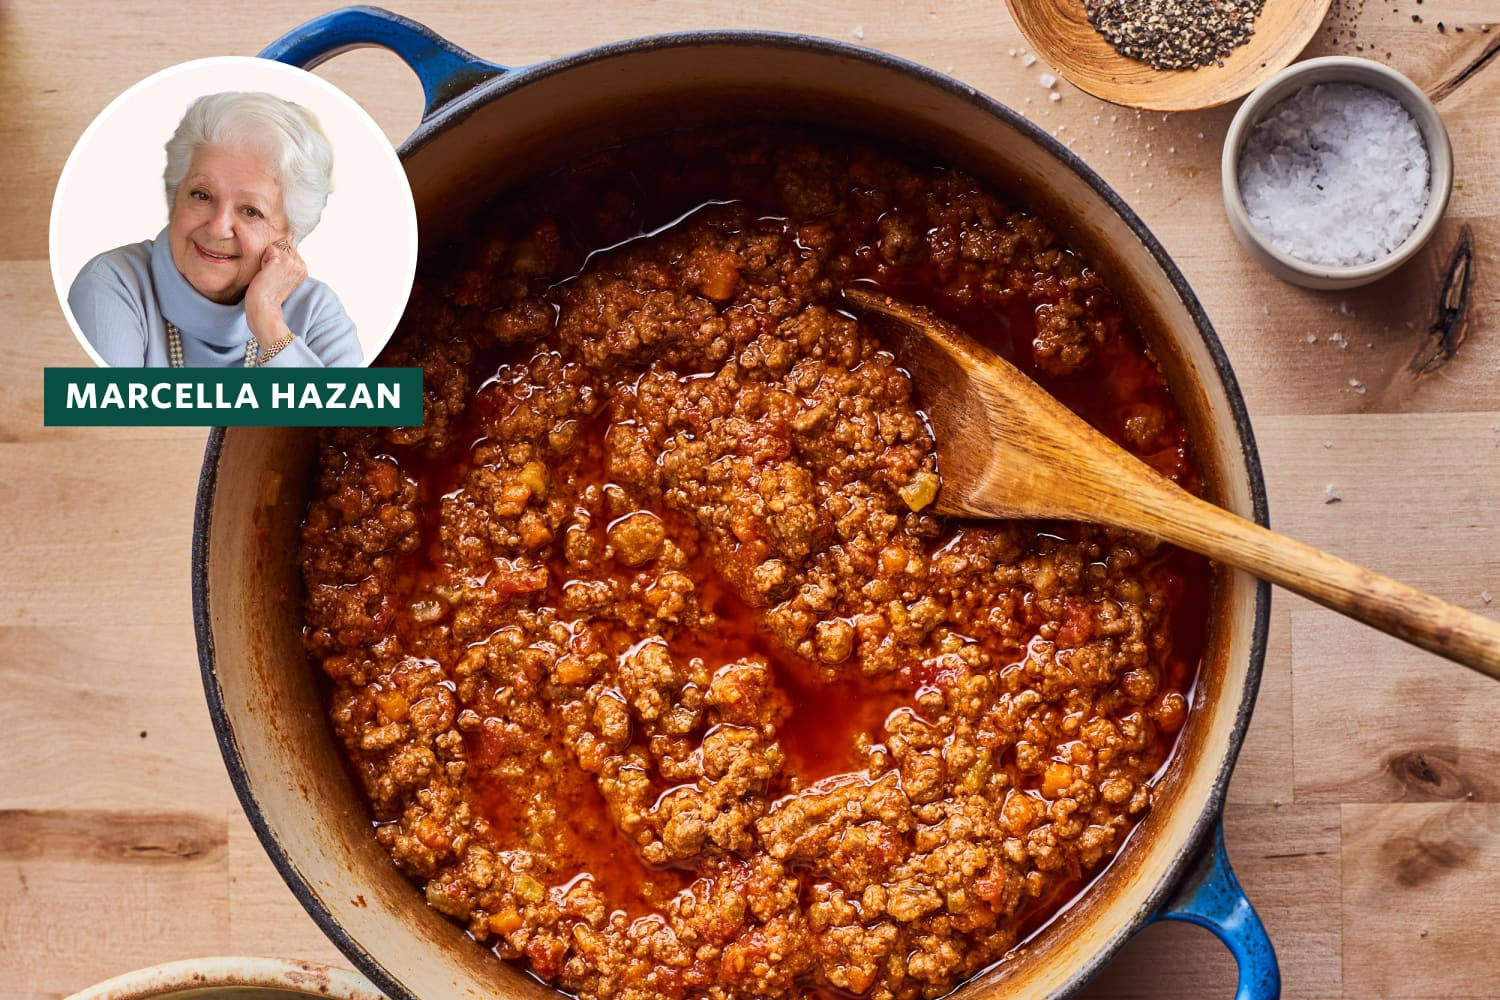 Marcella Hazan's Bolognese Sauce Confirms She's the Queen of Italian Cooking